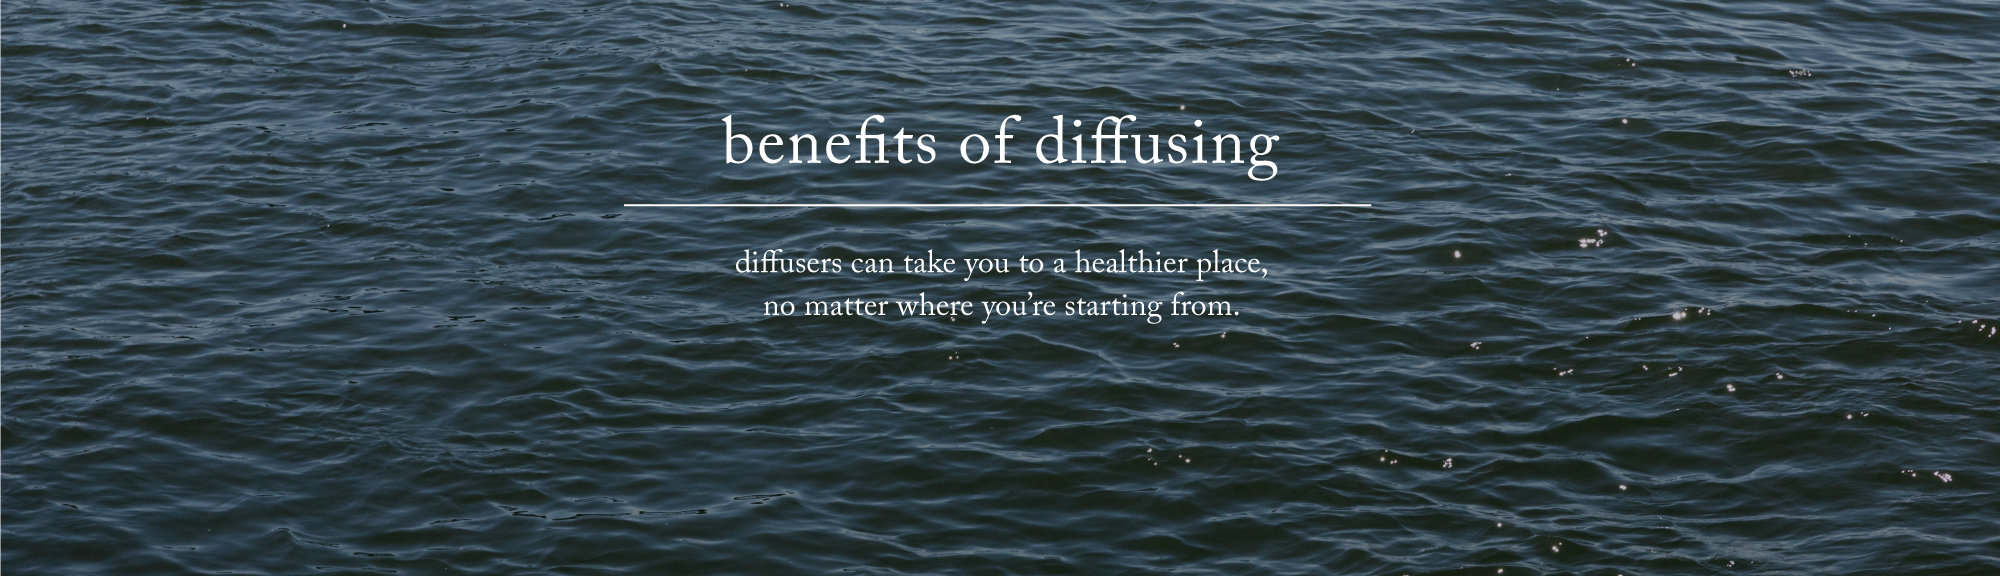 Benefits of Diffusing